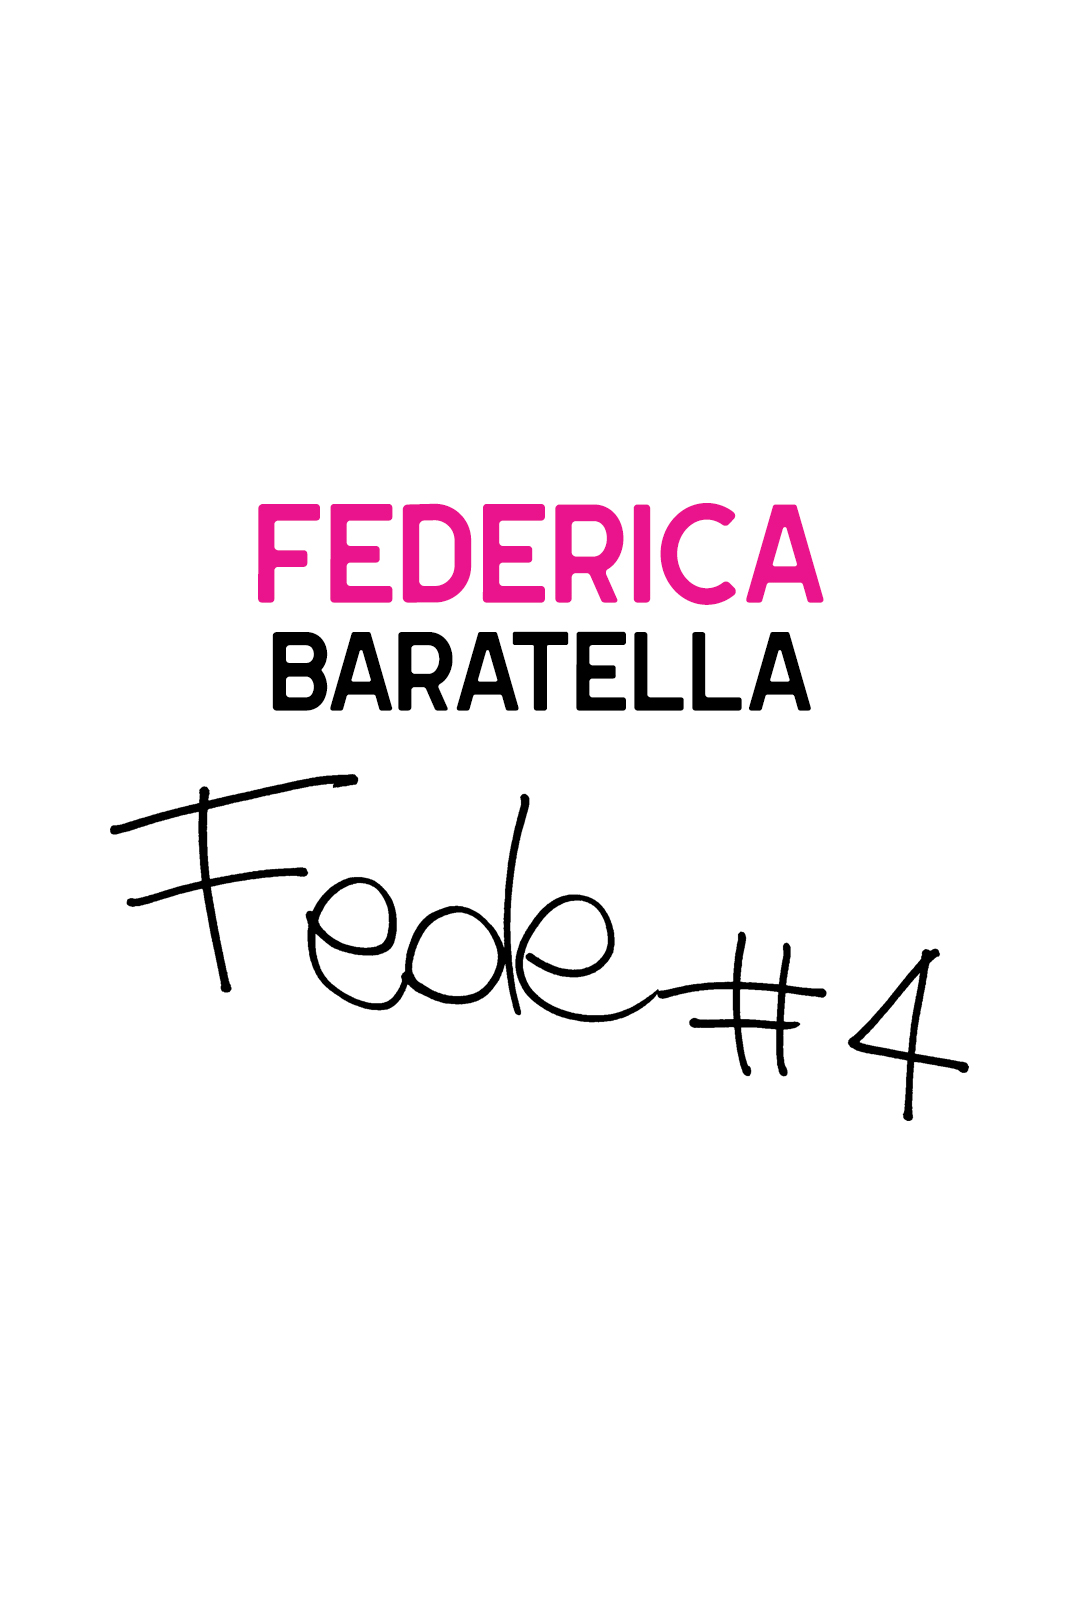 4 – Federica Baratella